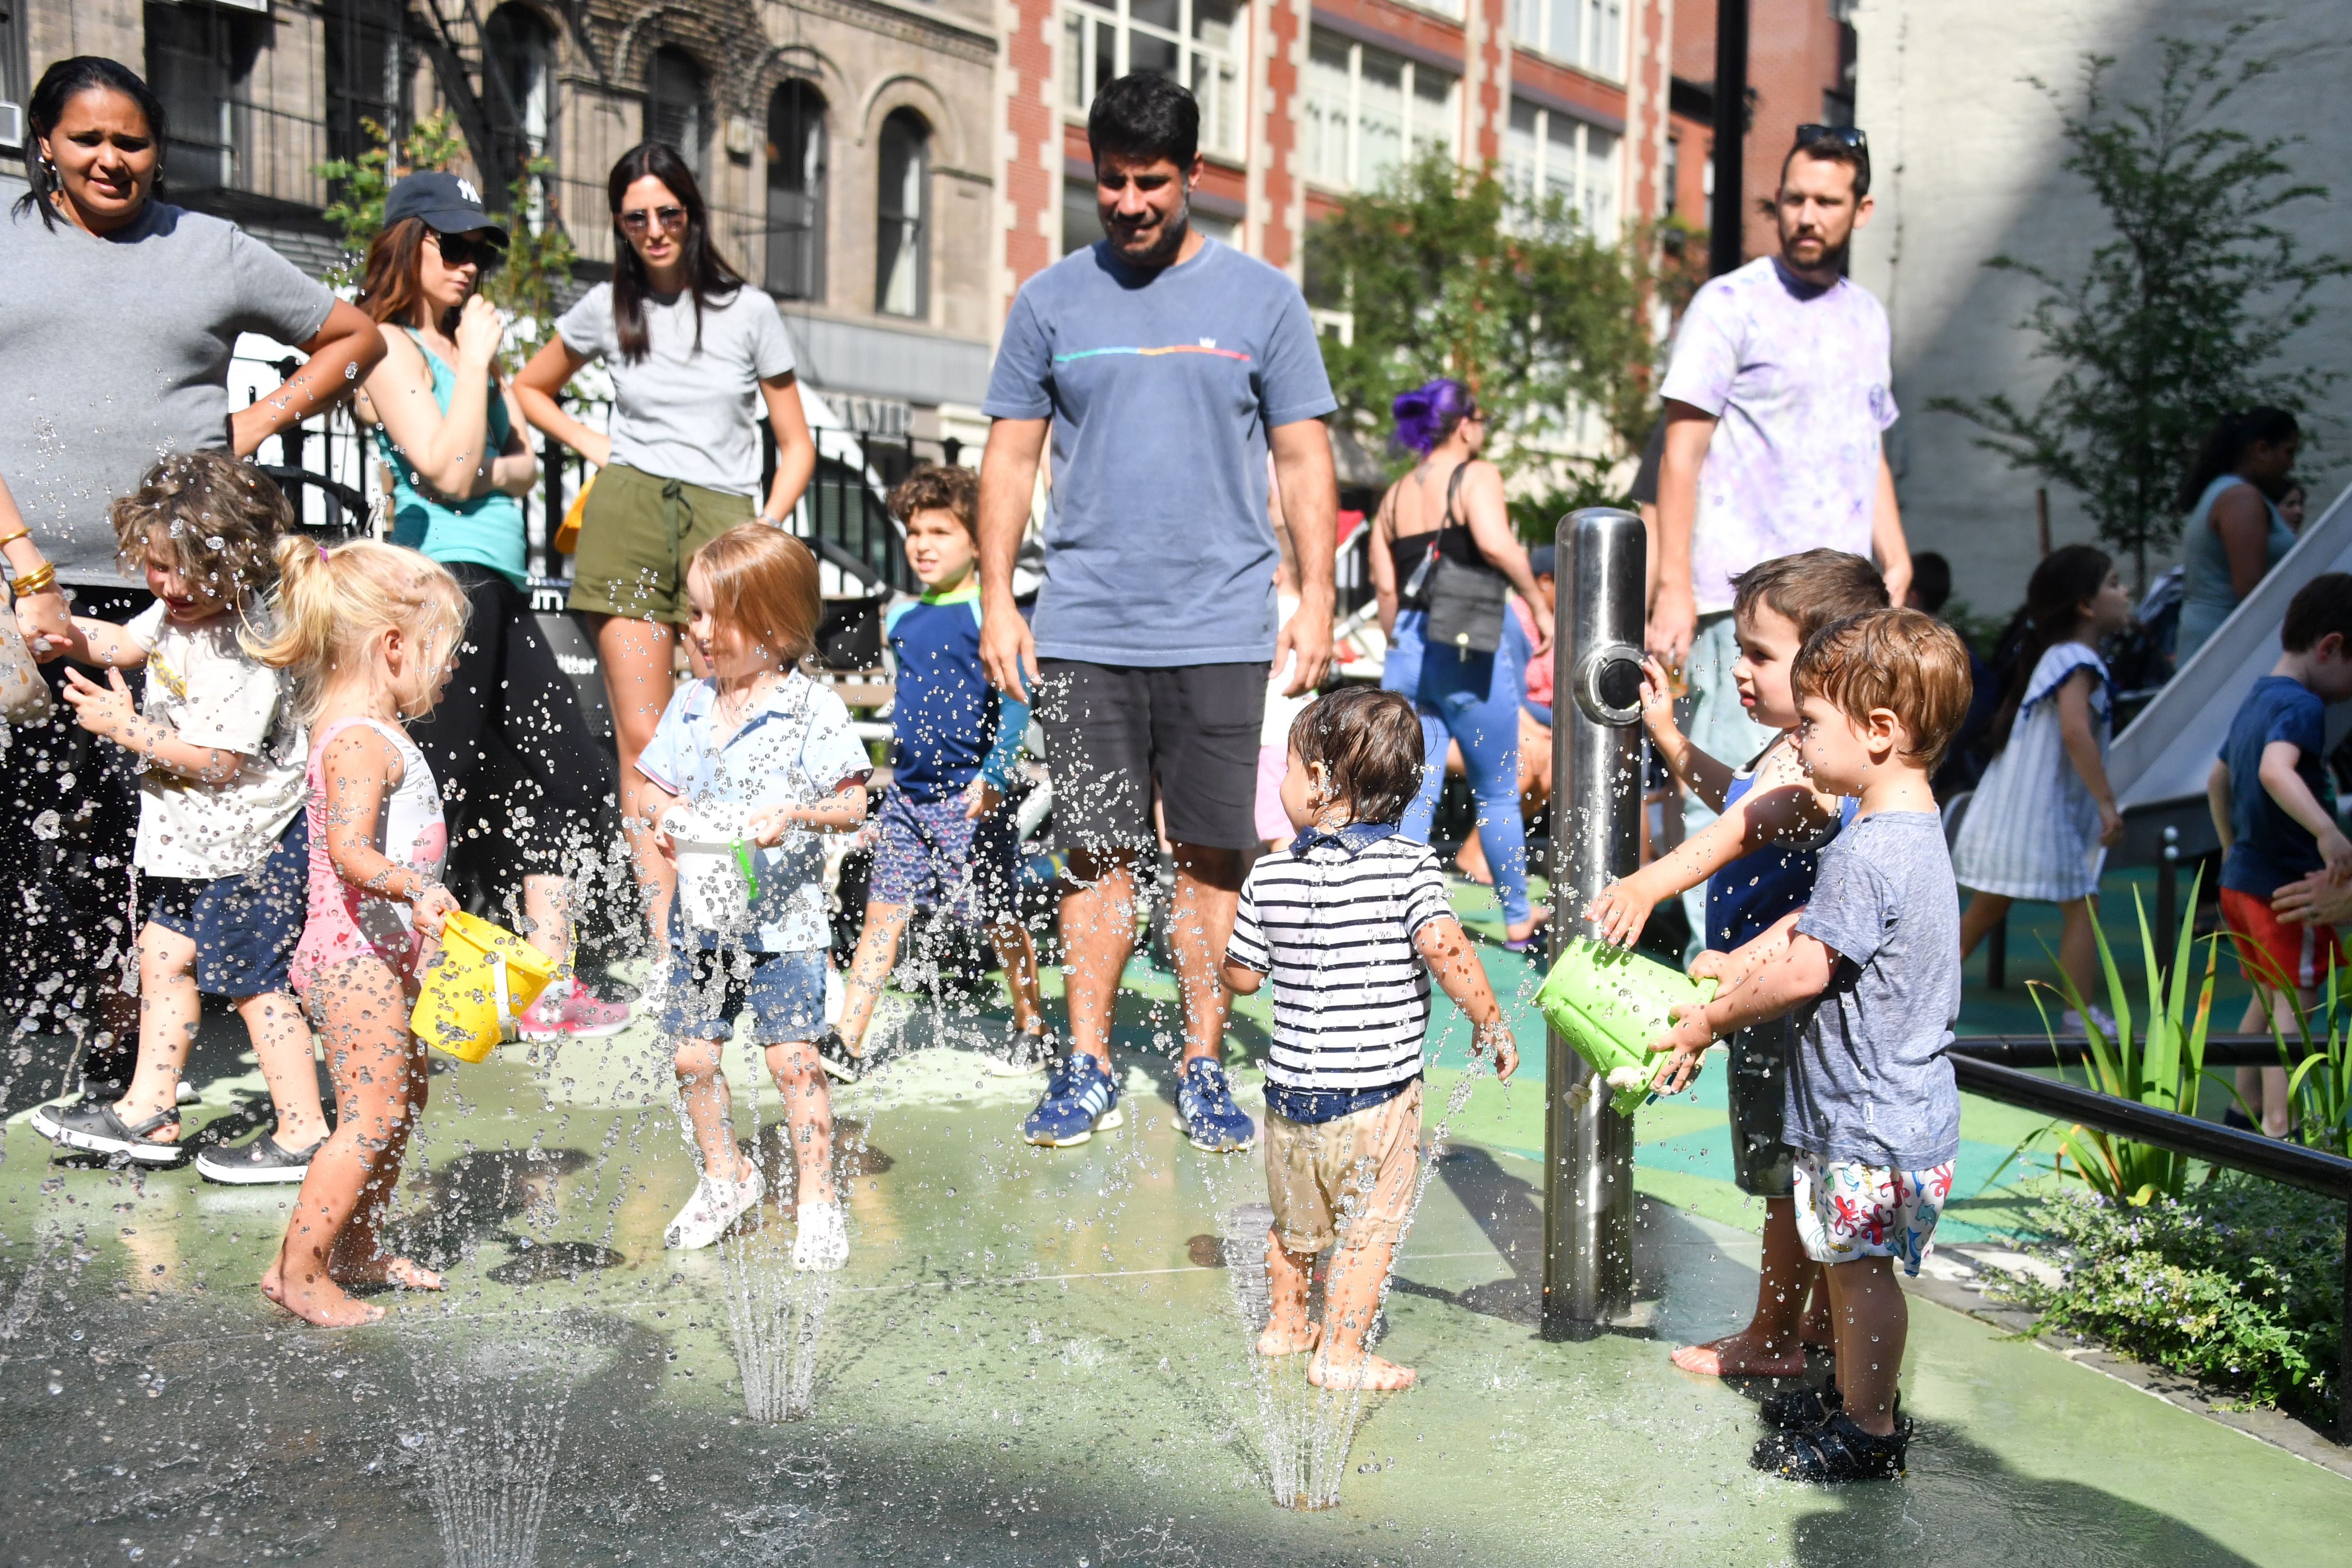 Chelsea Green is neighborhood's first new park in 40 years